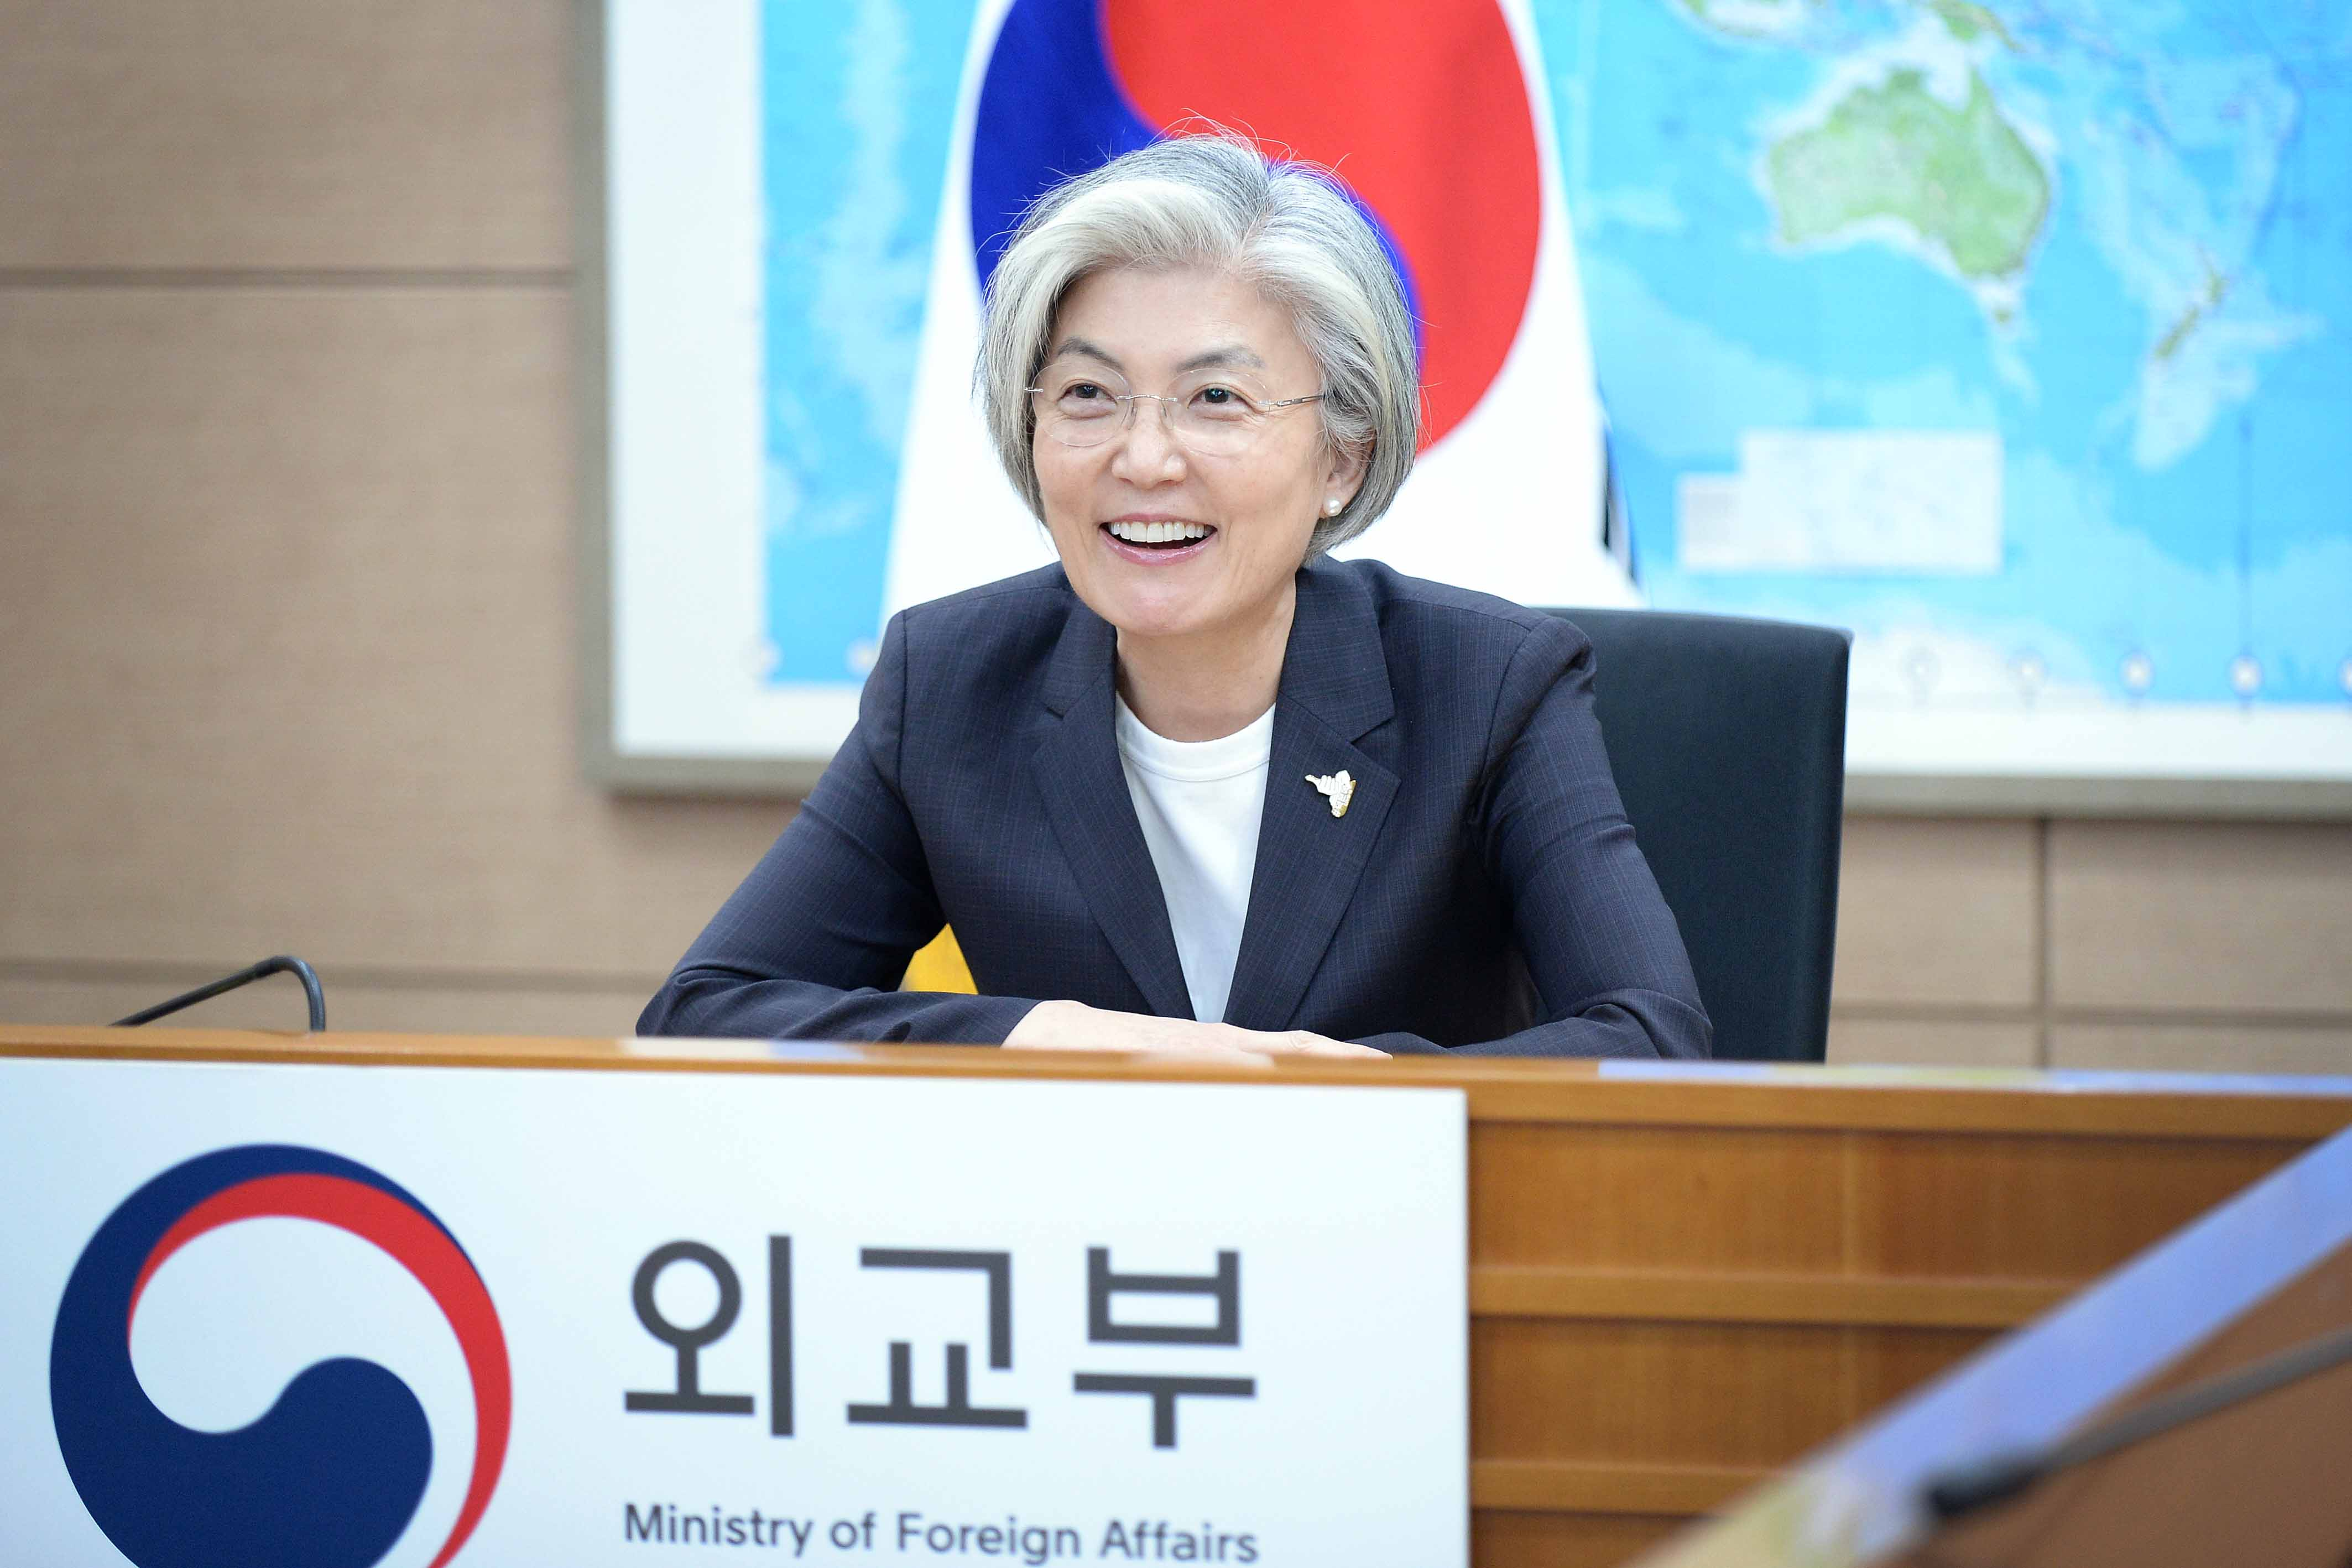 Video Conference between Foreign Ministers of ROK and India